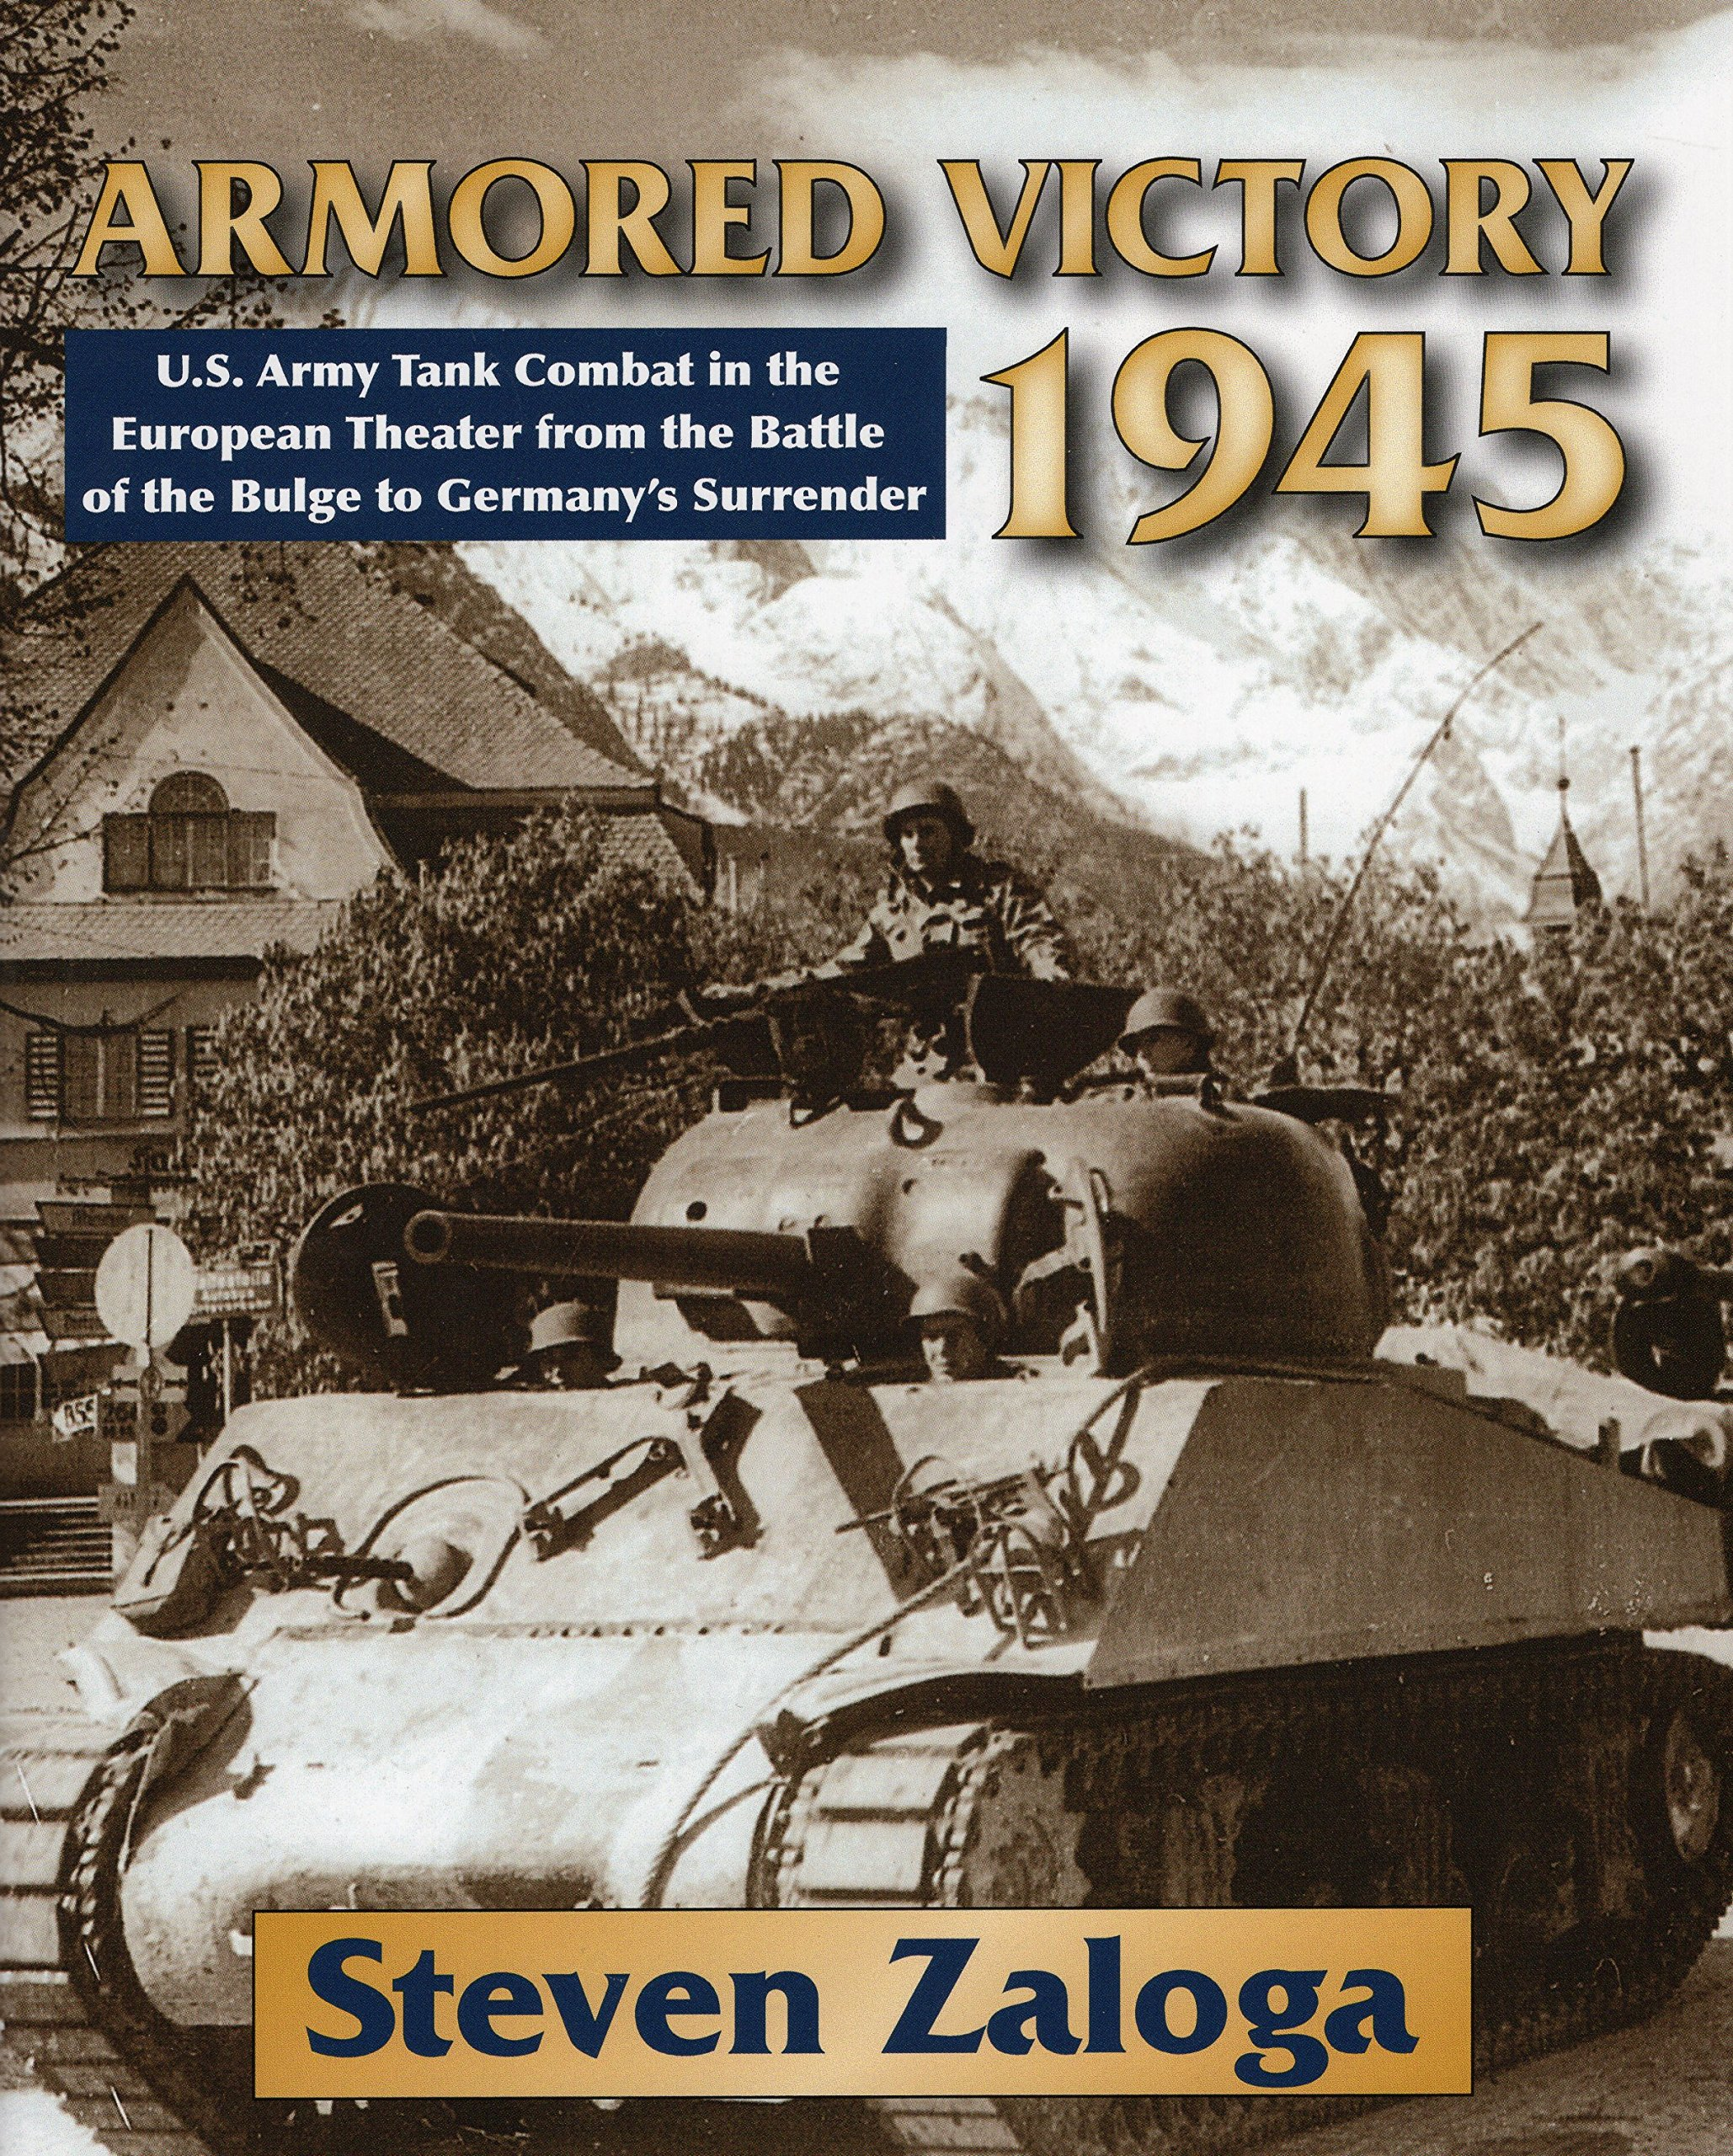 Read Online Armored Victory 1945: U.S. Army Tank Combat in the European Theater from the Battle of the Bulge to Germany's Surrender PDF